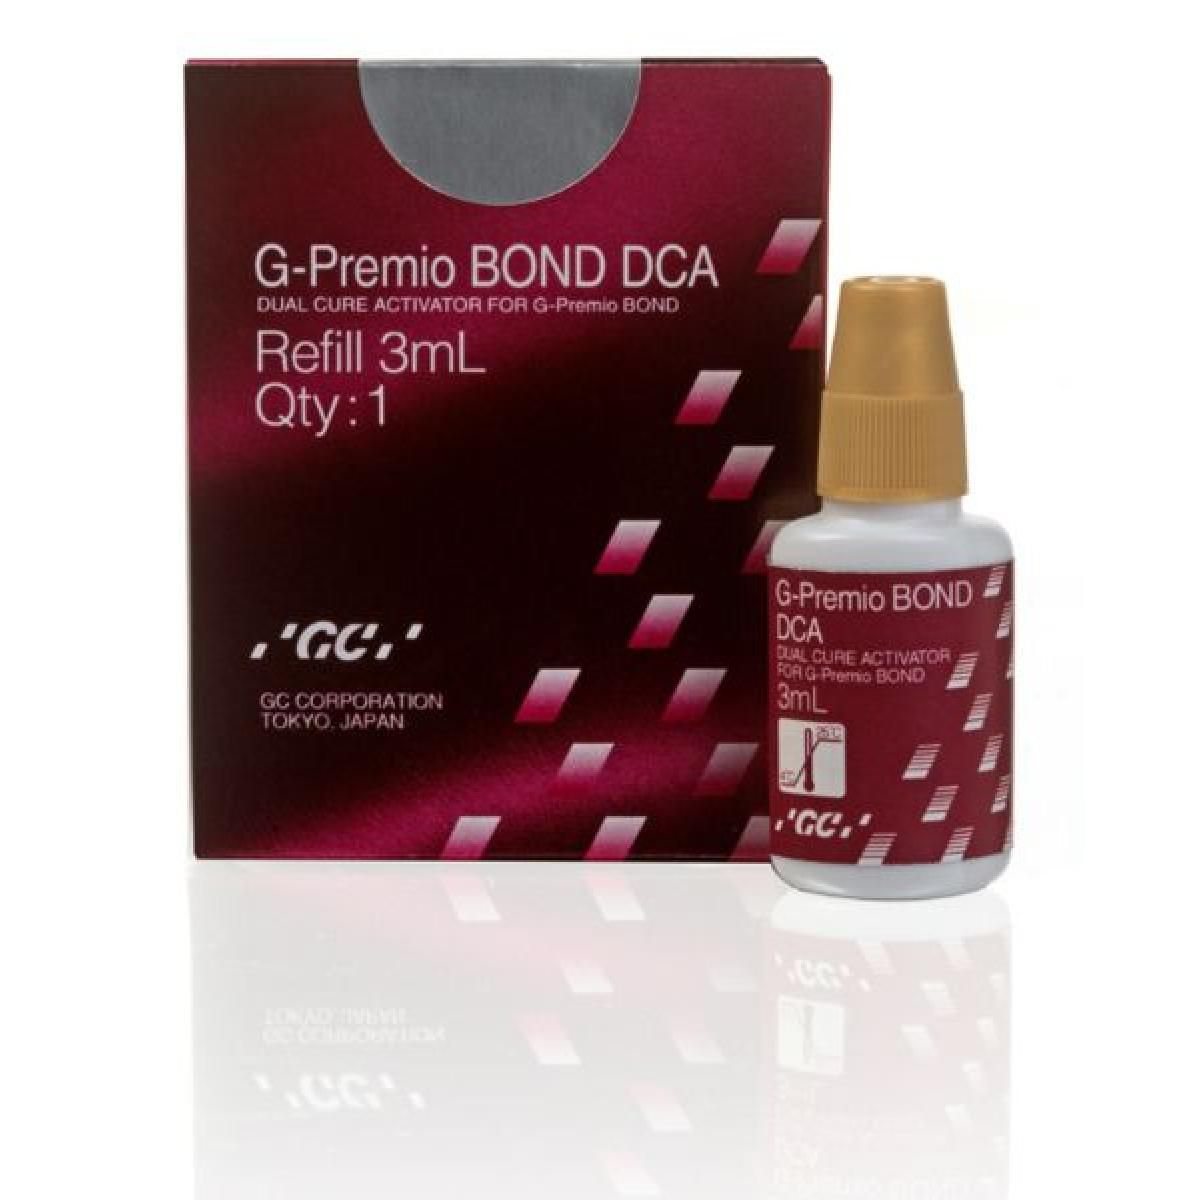 GC G PREMIO DCA 3ML REFILL -